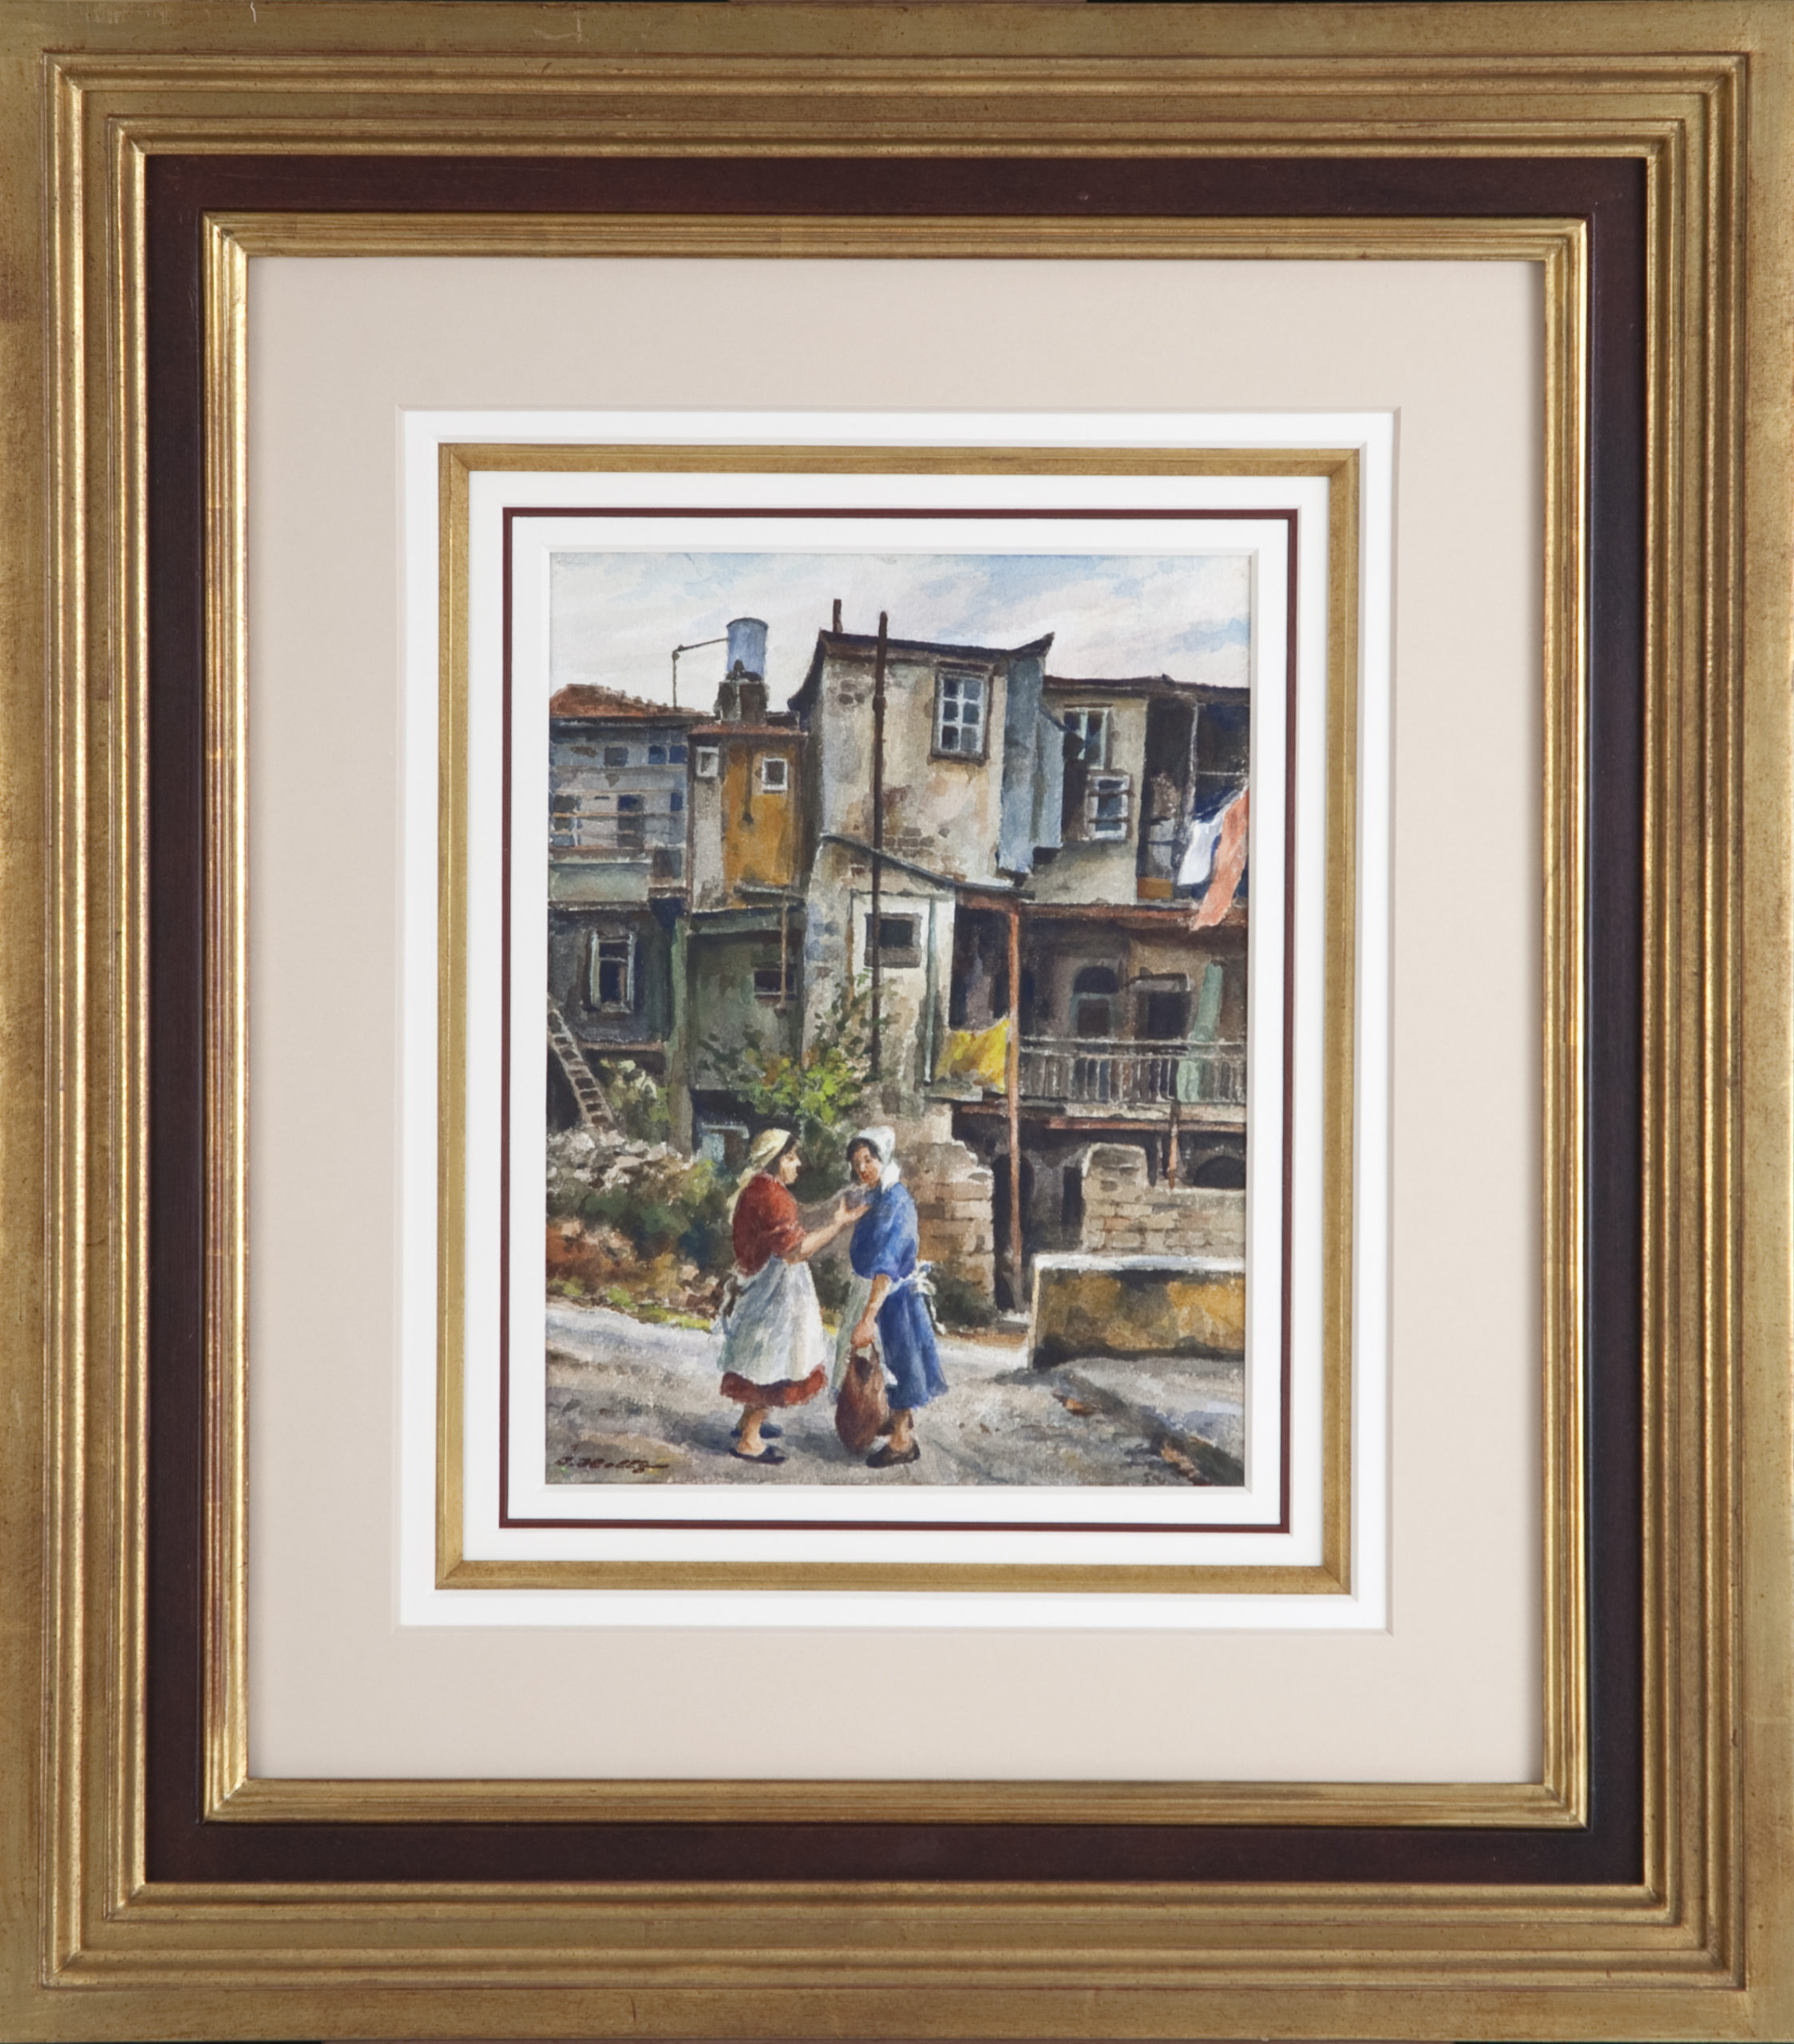 048 Gossiping 1972 - Watercolor - 8.75 x 11.5 - Frame: 22 x 25 x 2.5